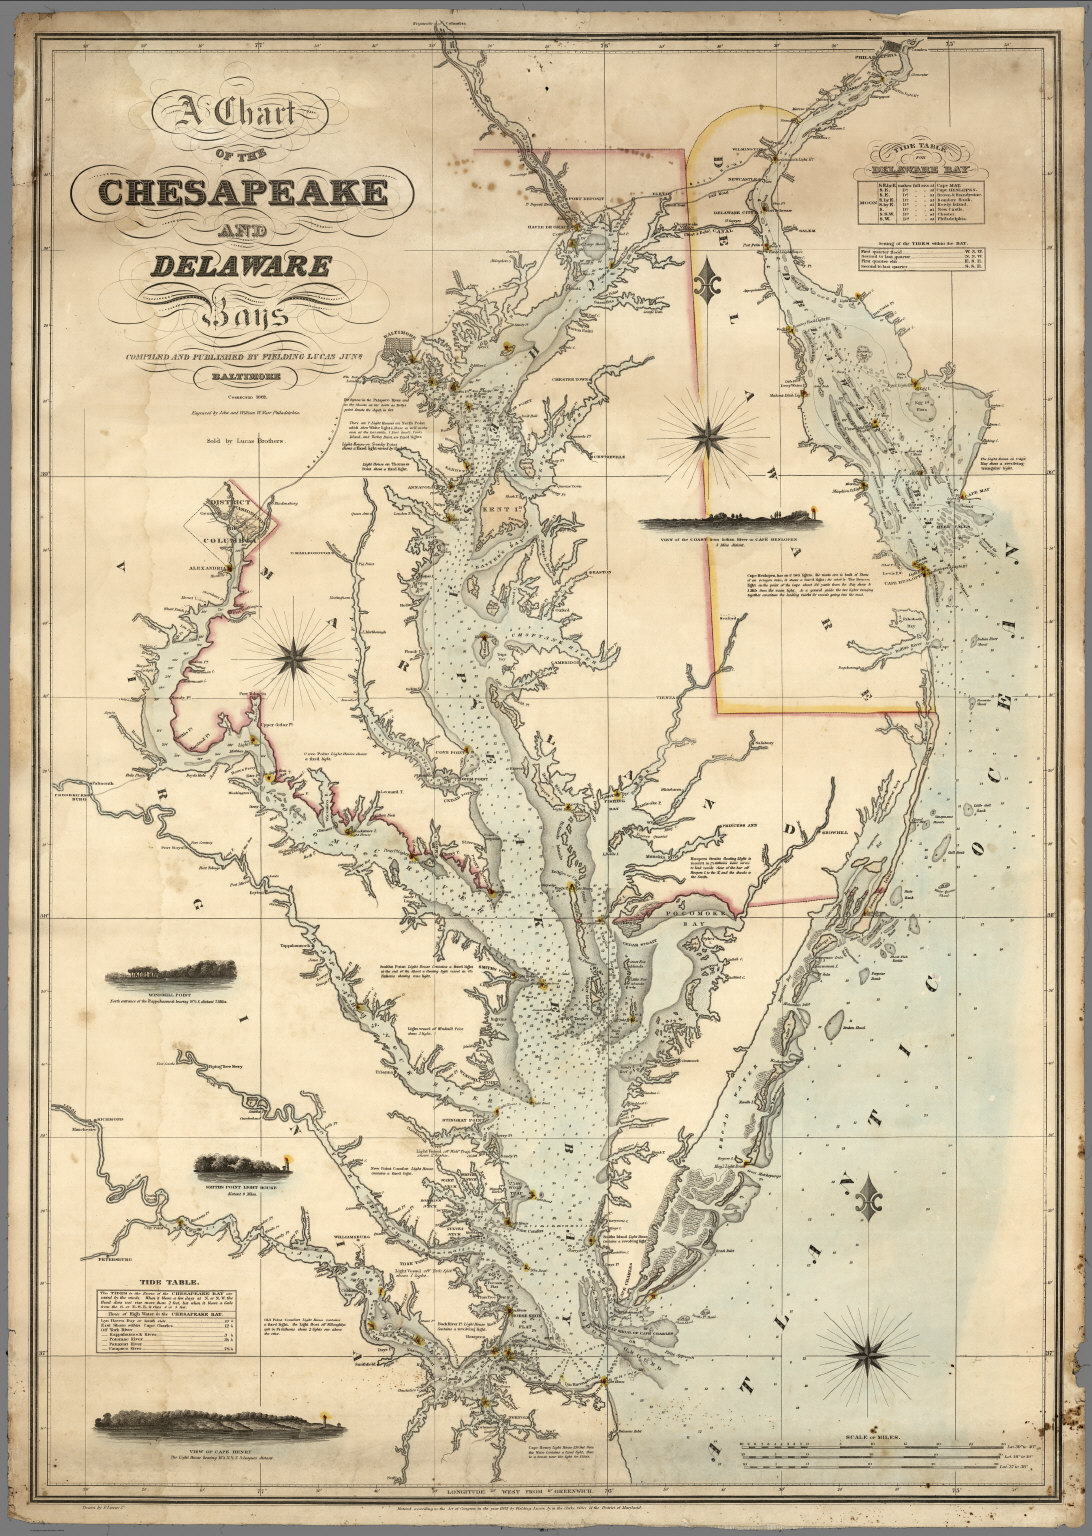 A chart of the chesapeake and delaware bays david rumsey a chart of the chesapeake and delaware bays nvjuhfo Gallery